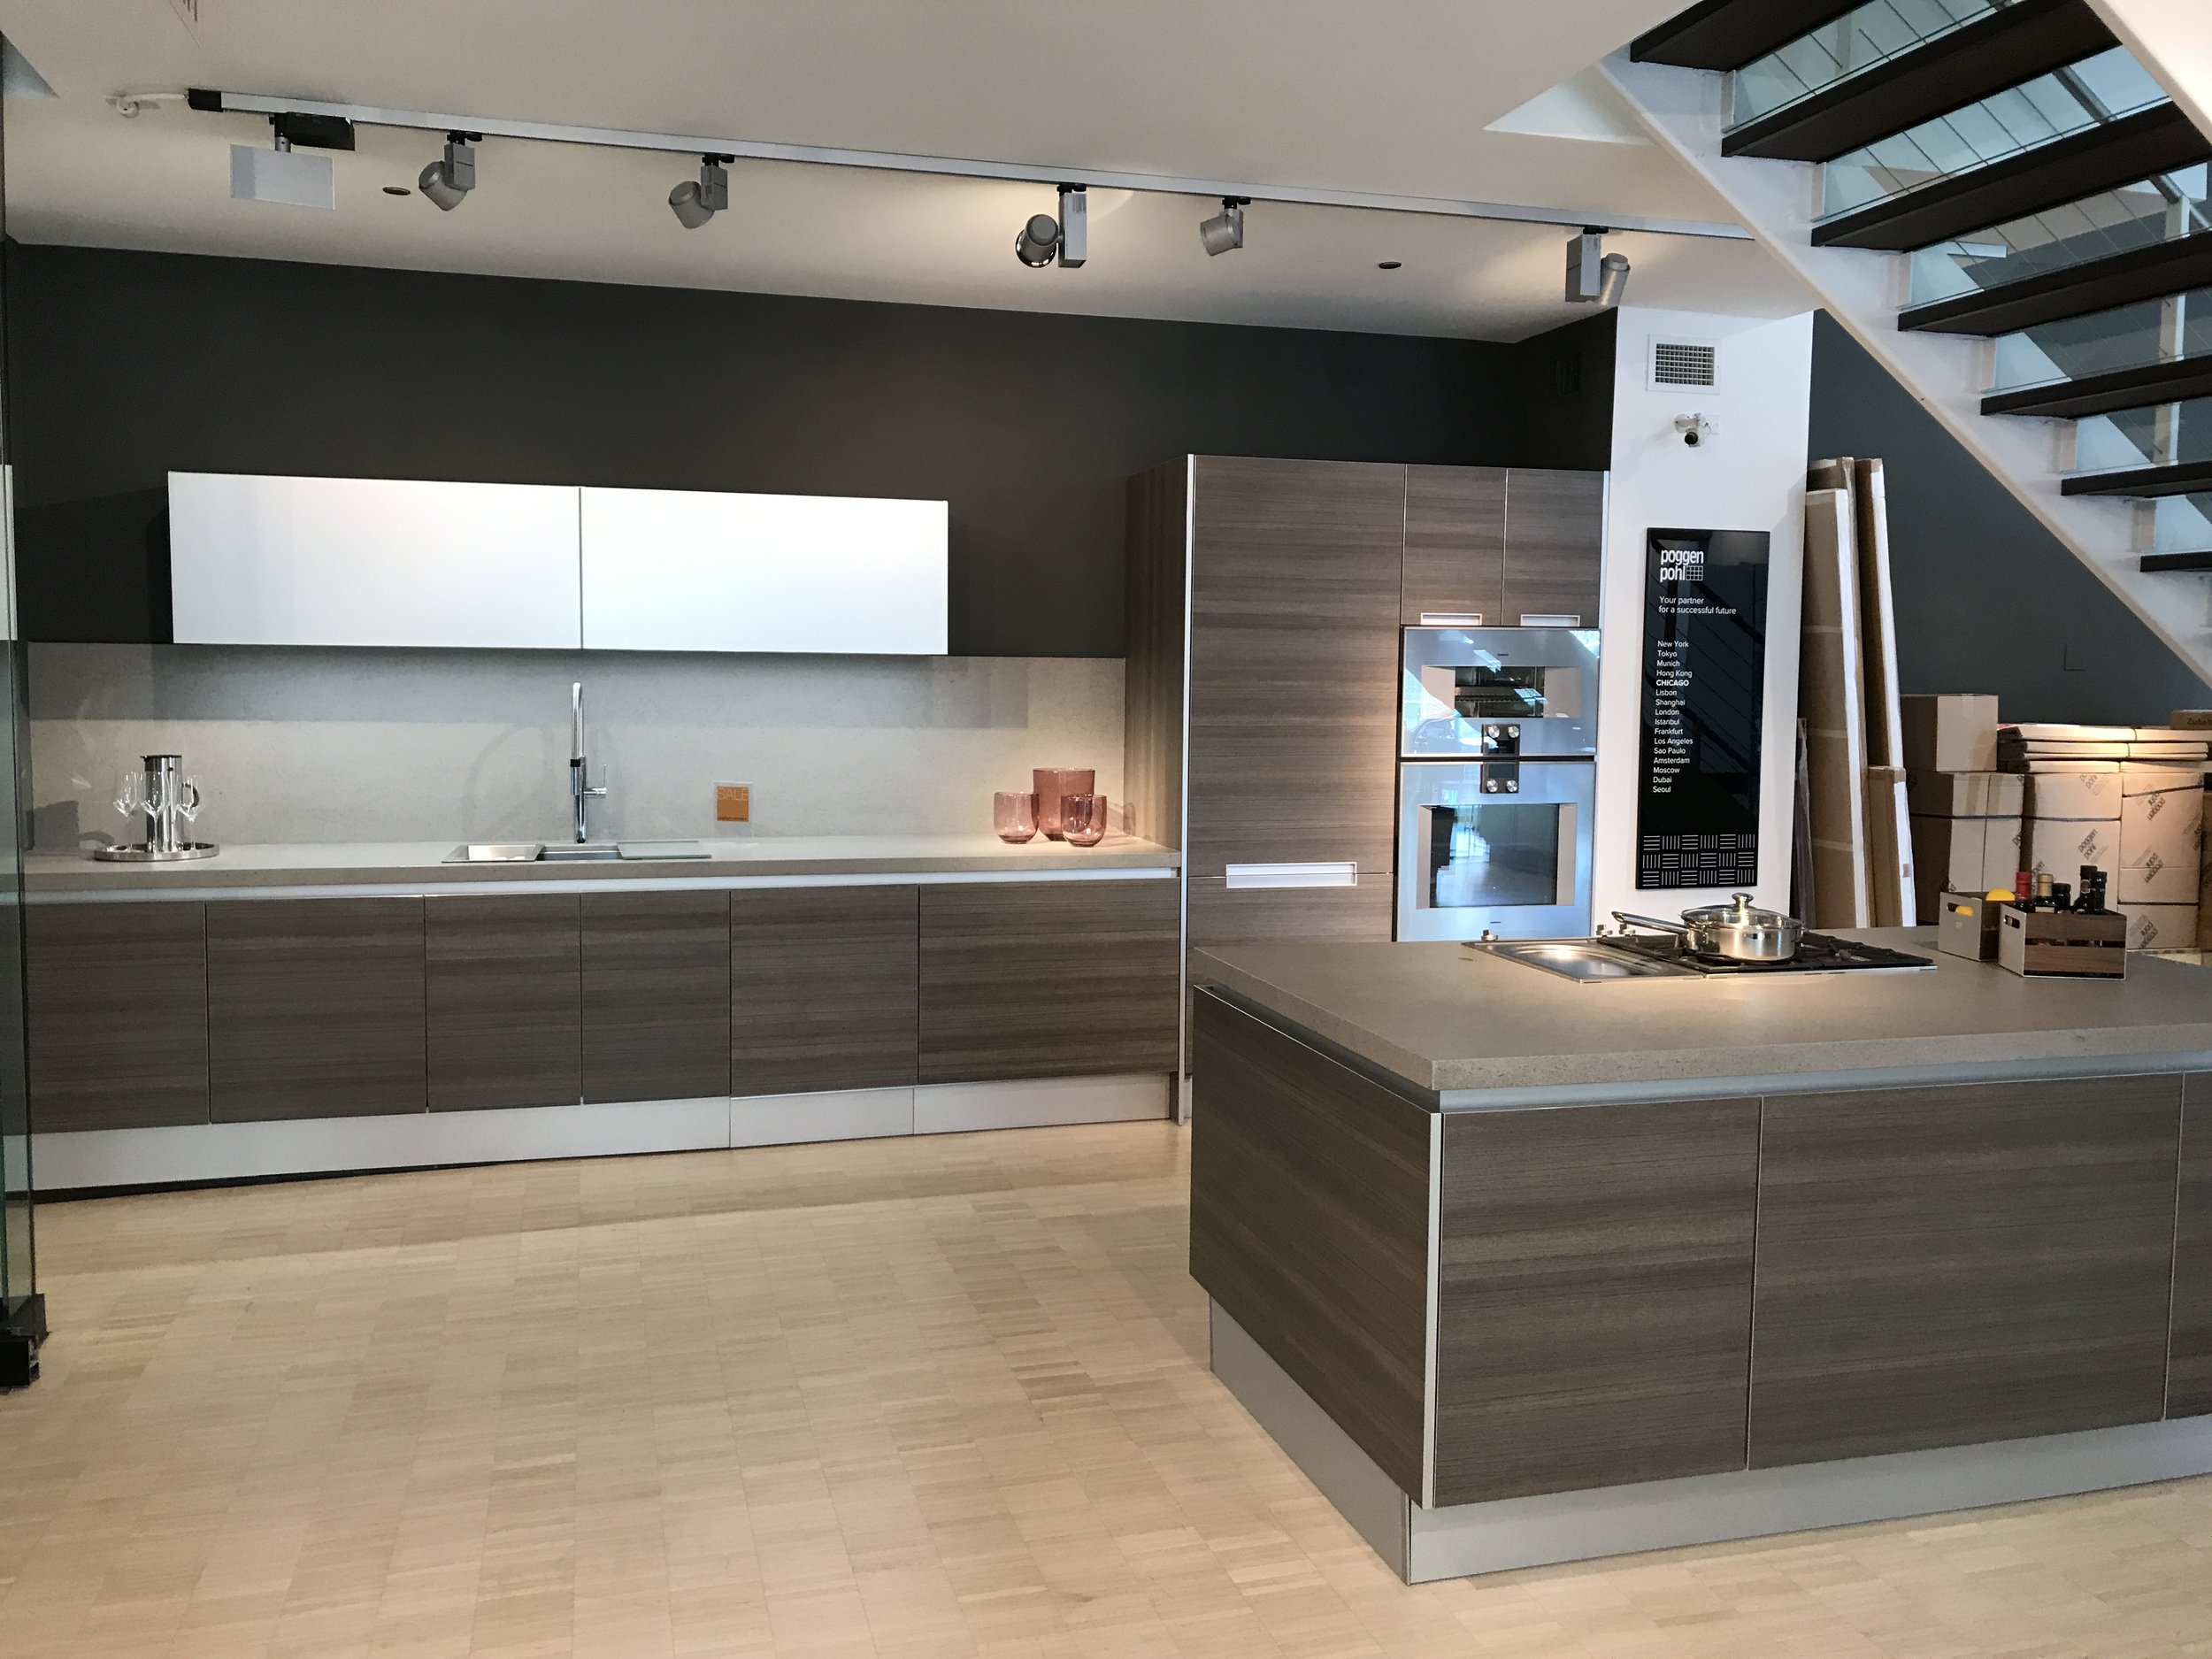 Poggenpohl Amsterdam New Poggenpohl Complete Kitchen Appliances Marble Counter Gaggenau Appliances